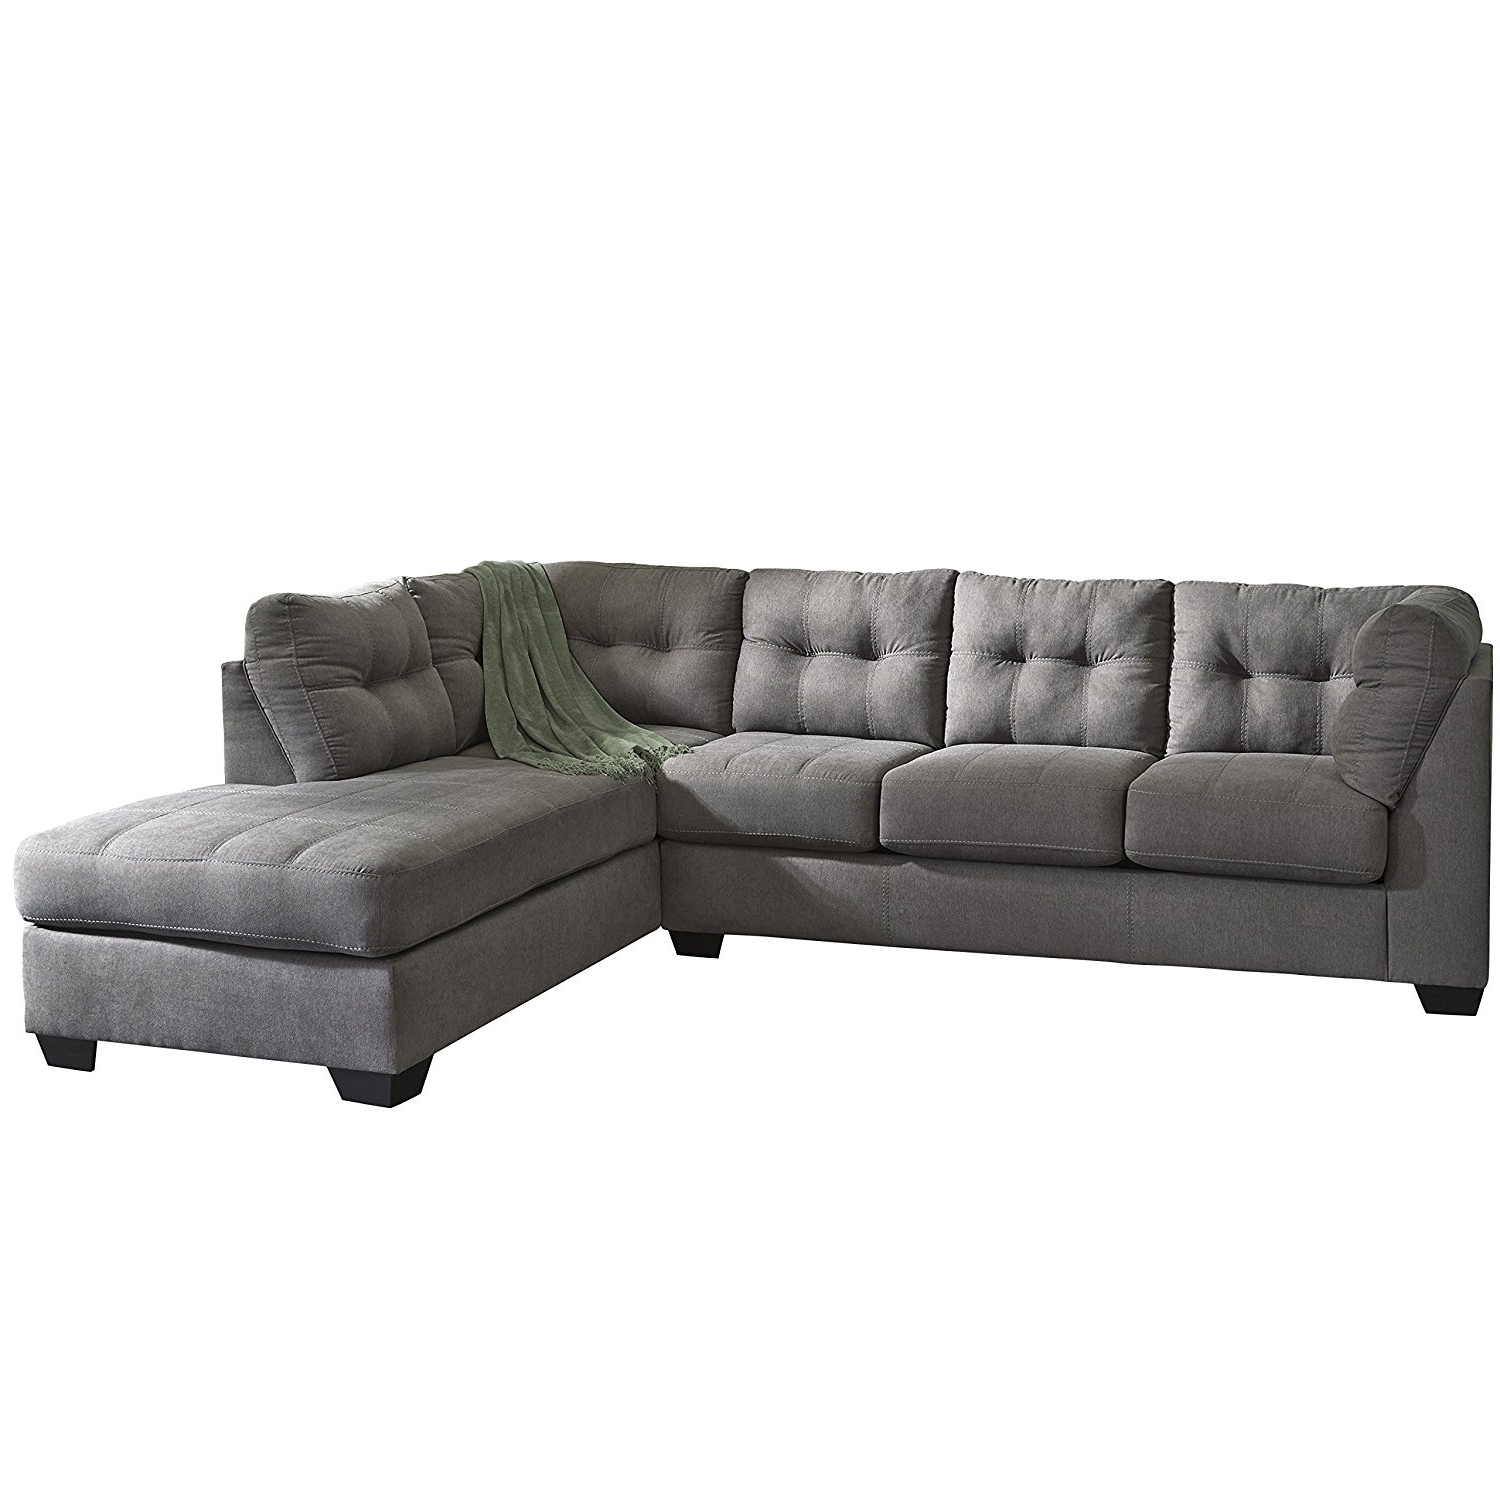 Latest Amazon: Flash Furniture Benchcraft Maier Sectional With Right For Charcoal Sectionals With Chaise (View 9 of 15)